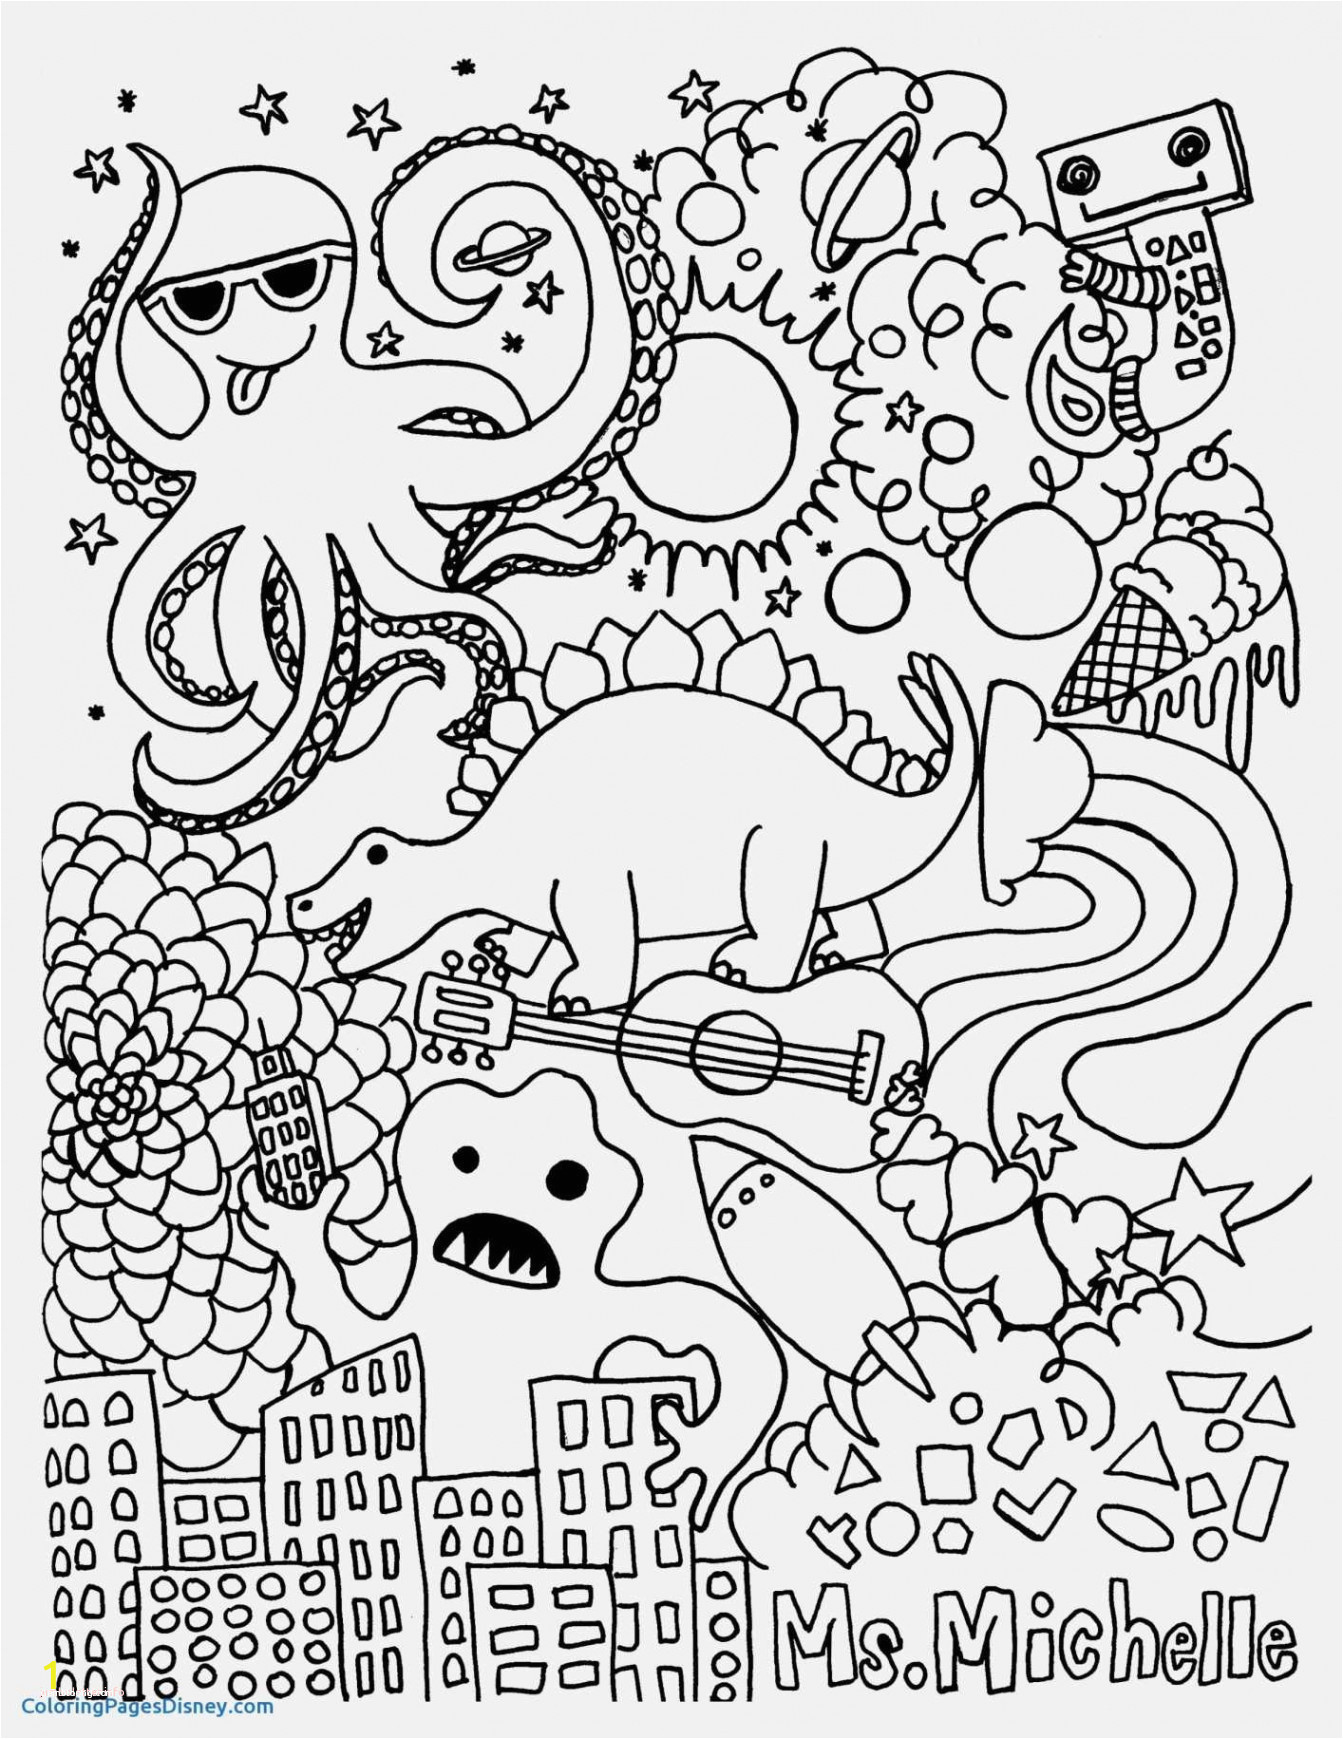 free printable swear word coloring pages pdf beautiful coloring pages coloring christmas sheets for adults kids of free printable swear word coloring pages pdf